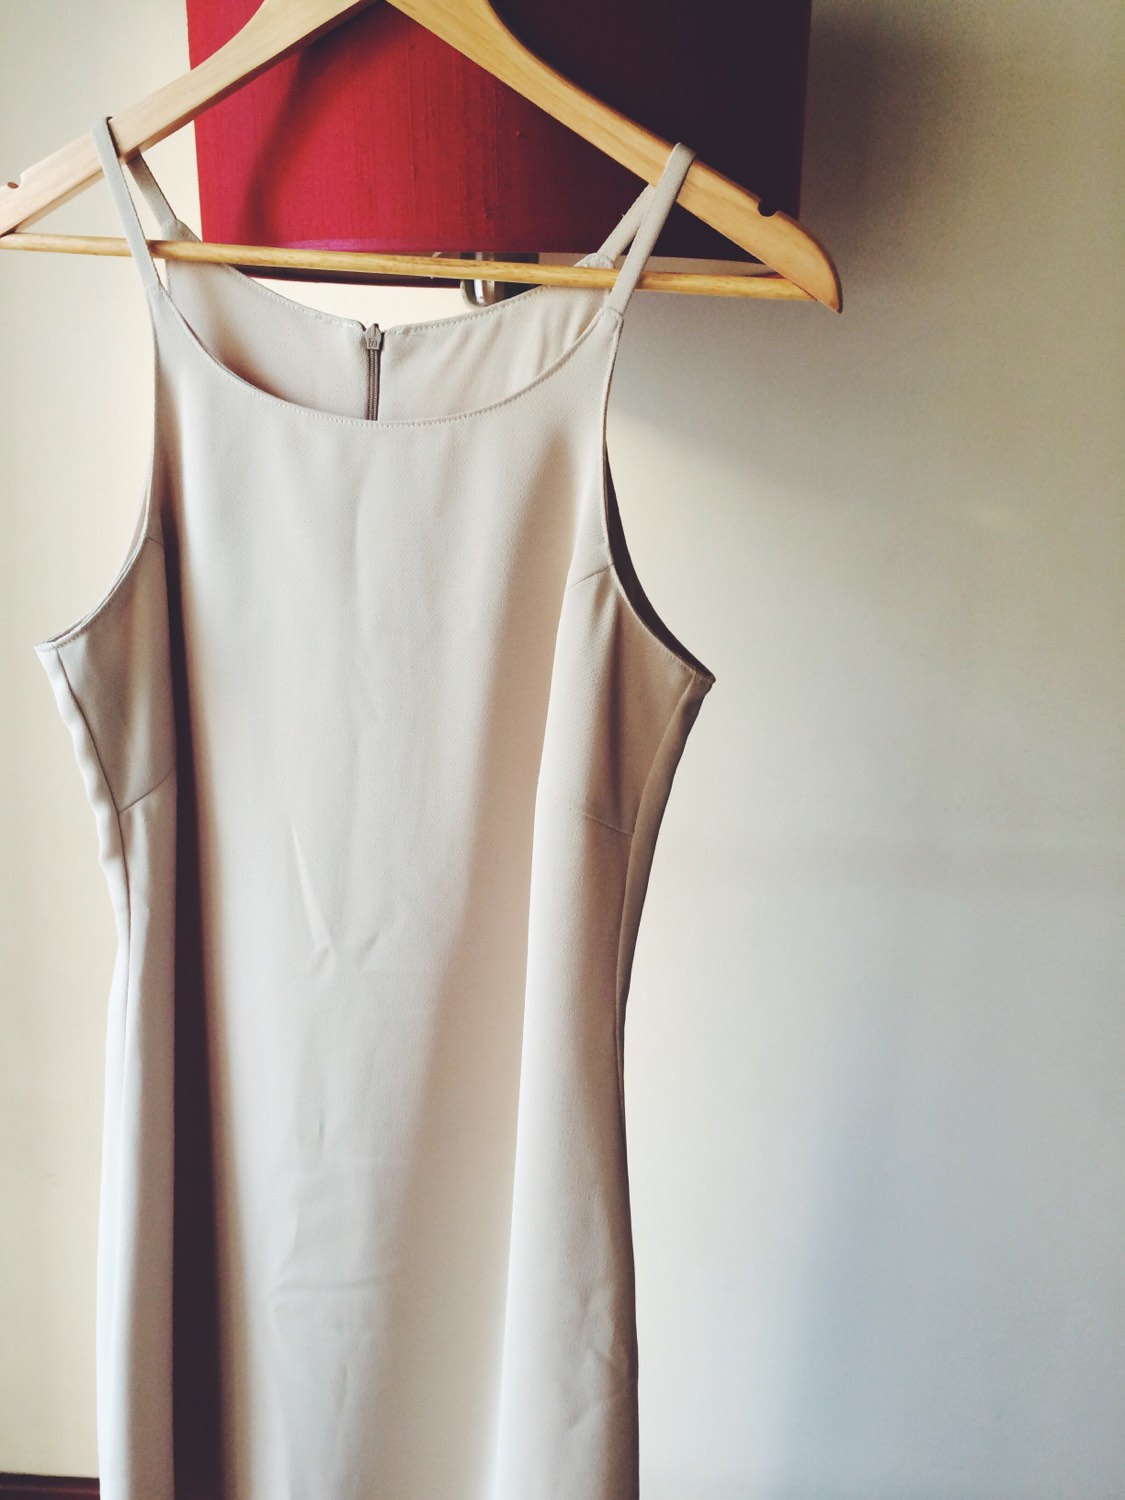 Women ivory dress, knee lenght dress, strappy dress, vintage dress size large/ european large